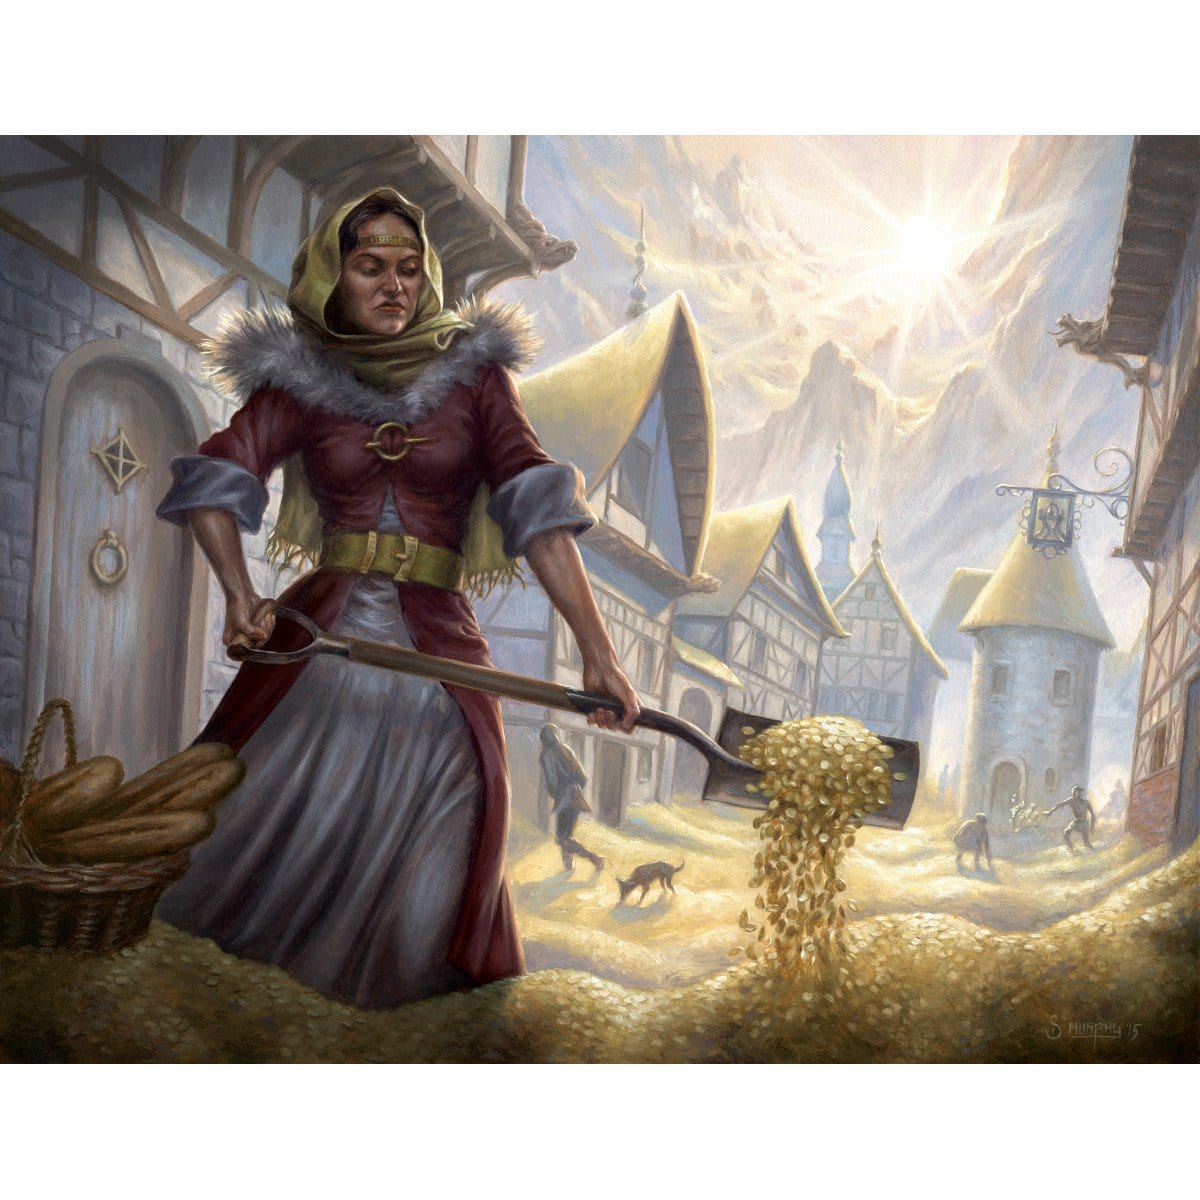 Windfall Print - Print - Original Magic Art - Accessories for Magic the Gathering and other card games